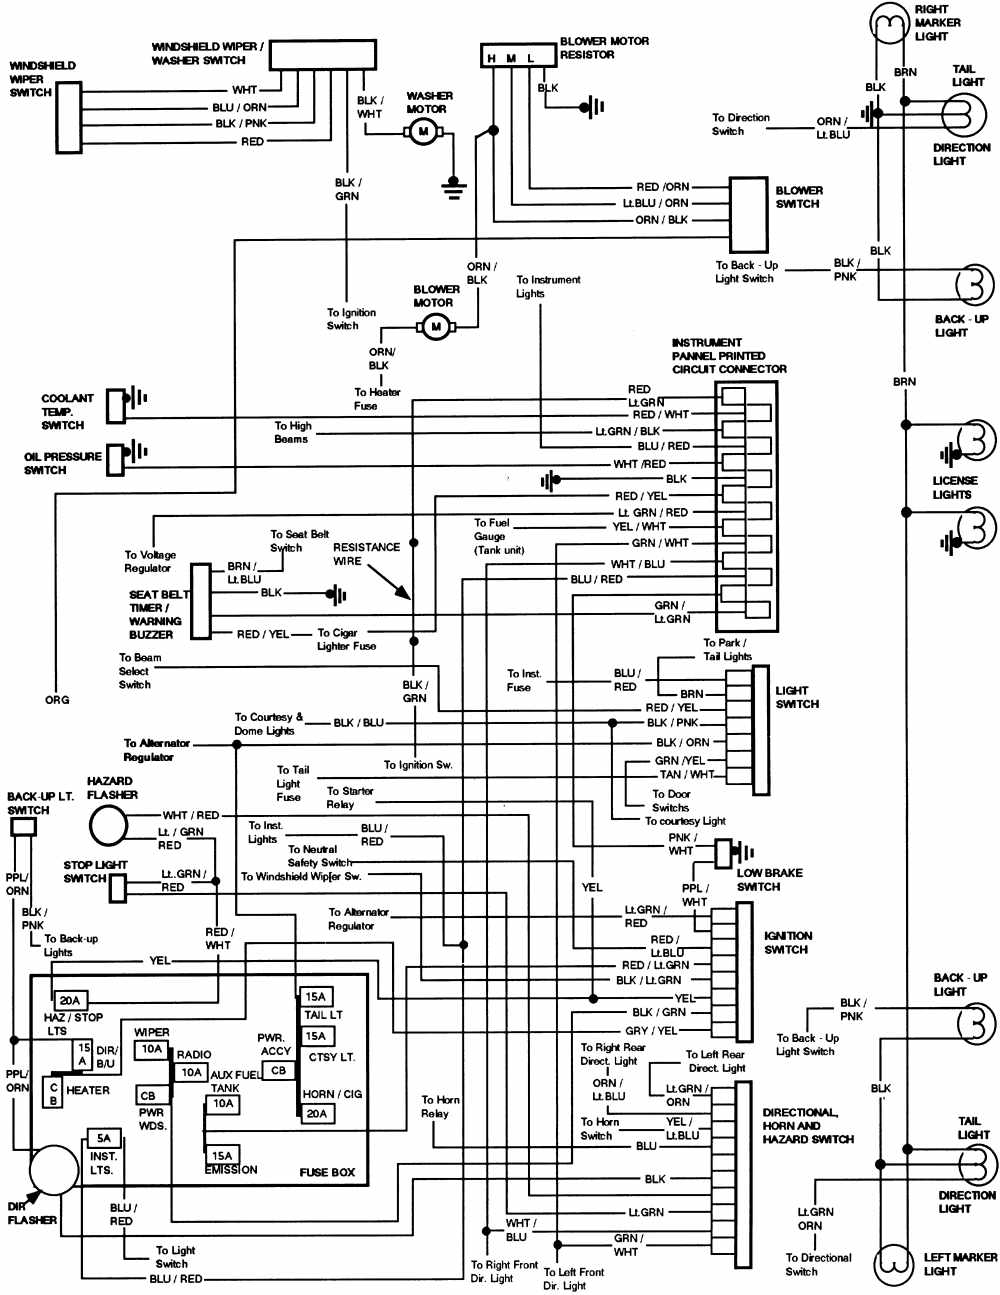 Ford Bronco Instrument Panel Wiring Diagram on 1994 Ford Ranger Motor Diagrams